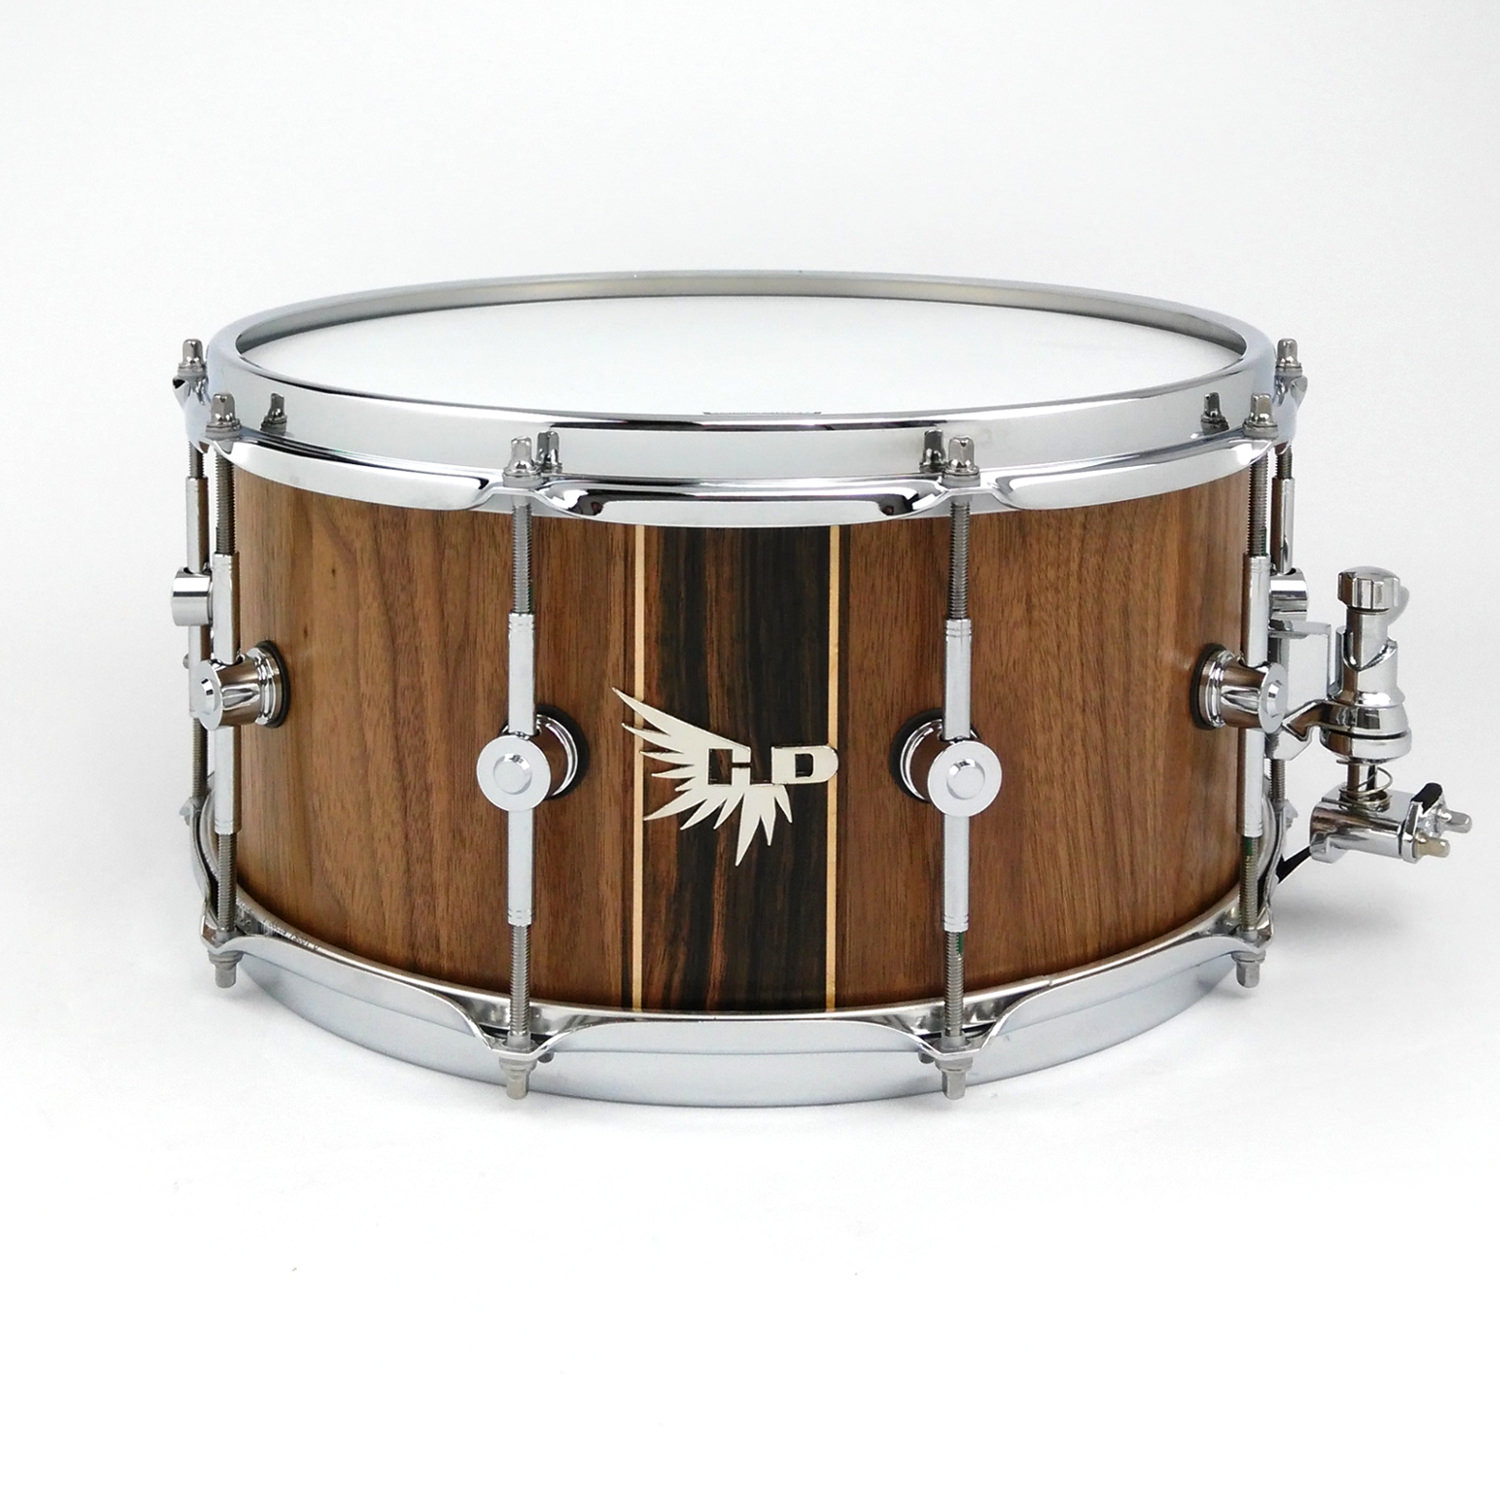 Nick Baglio Snare Drum Hendrix Drums Walnut Accent Macassar Ebony Rock tama